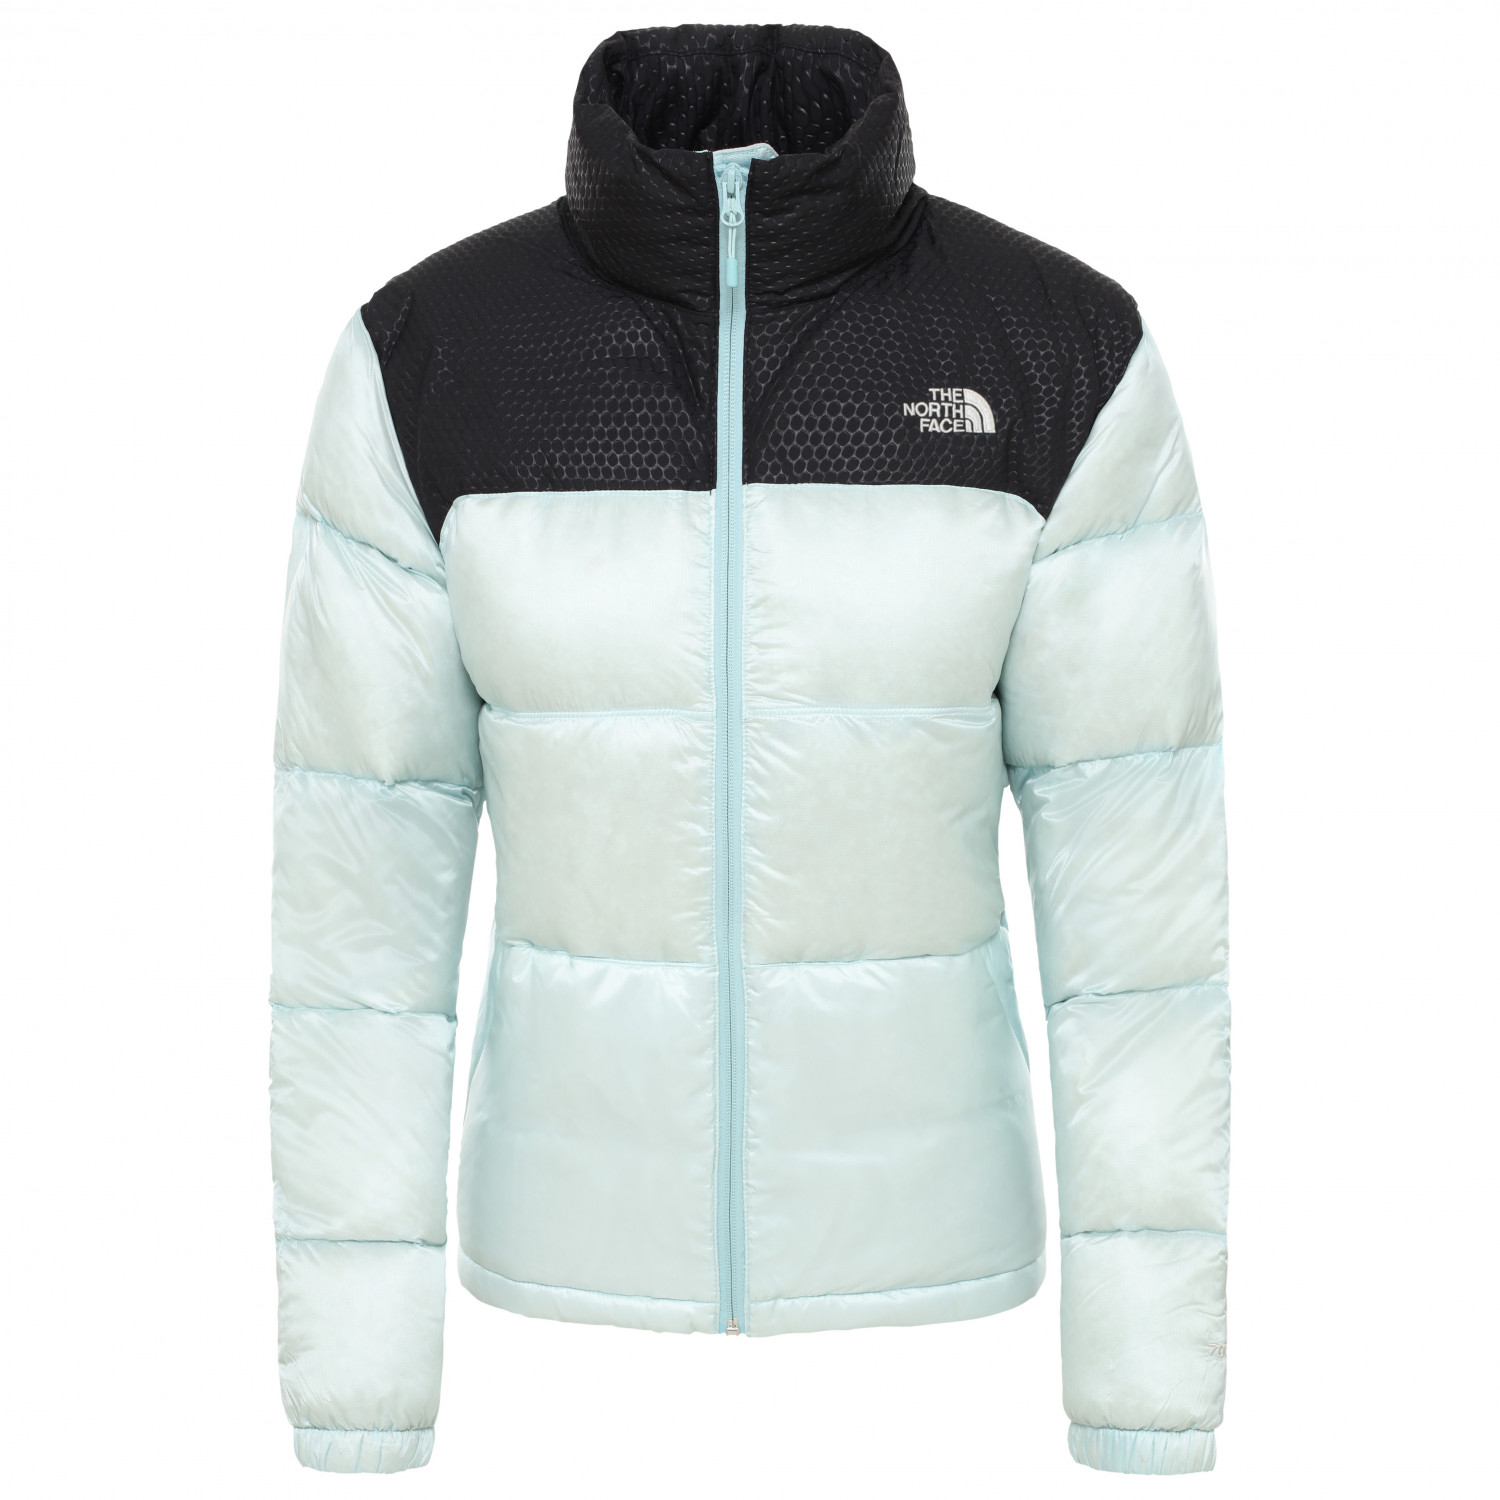 The North Face Women's Nevero Down Jacket Giacca in piumino Windmill Blue | XS